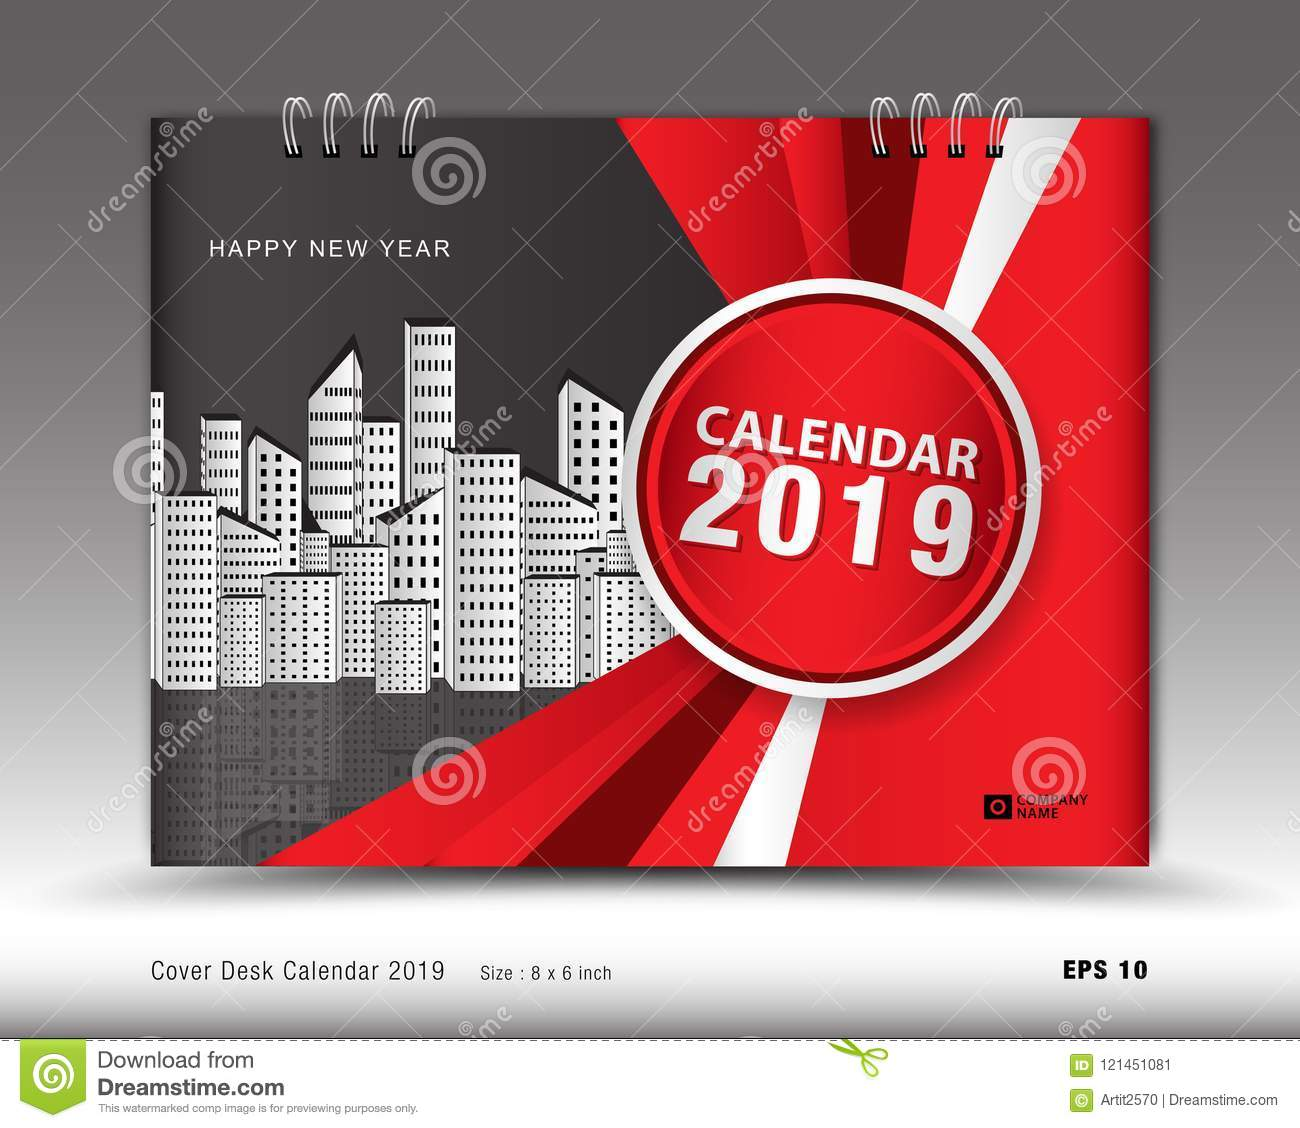 cover desk calendar for 2019 year template vector book cover layout